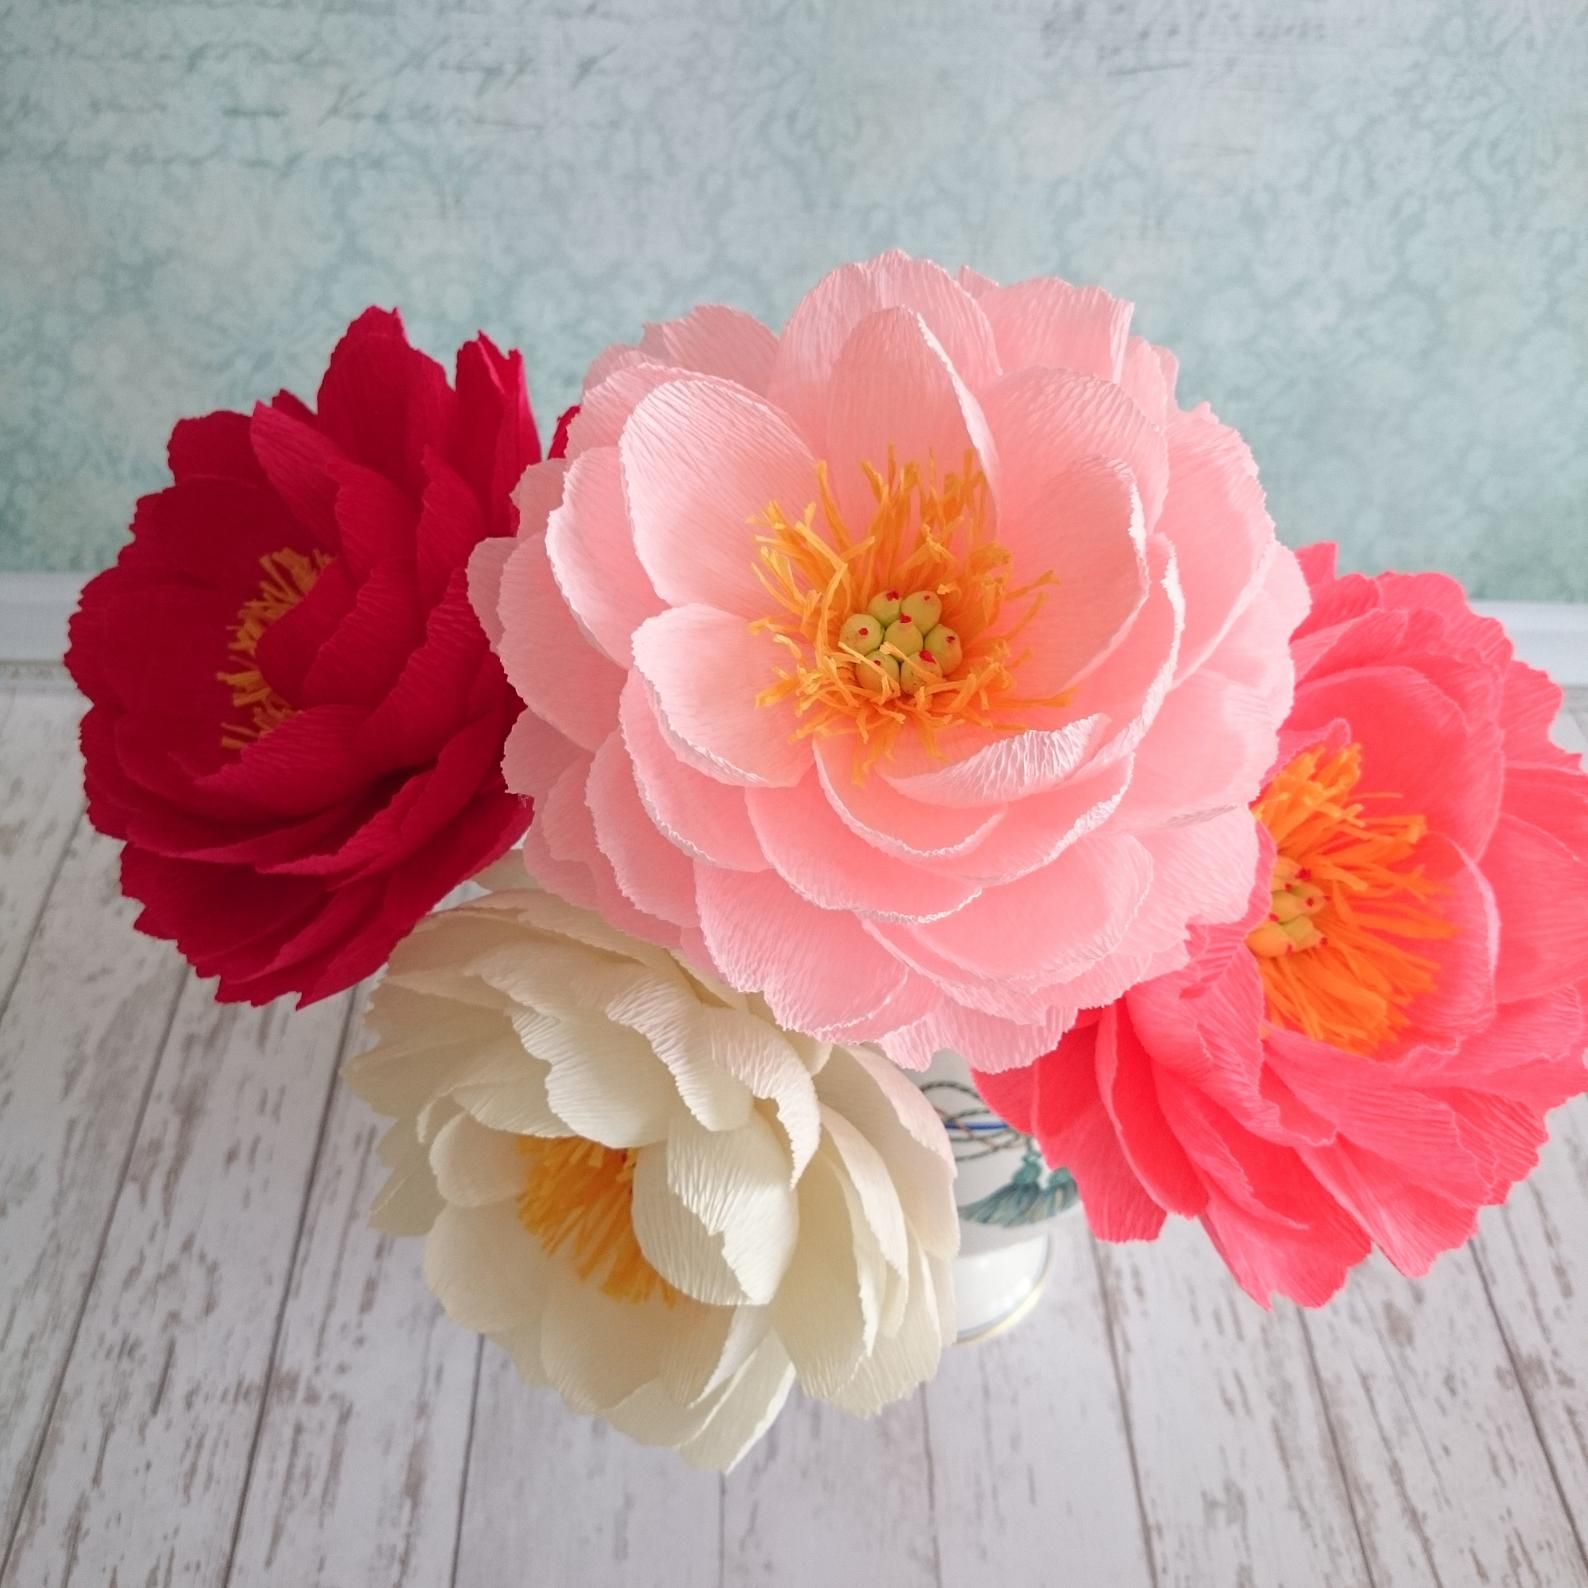 Paper peony arrangement Coral charm peony bouquet Red paper flower stem Crepe paper flowers Peony wedding centerpiece Cream fake flowers #paperflowercenterpieces